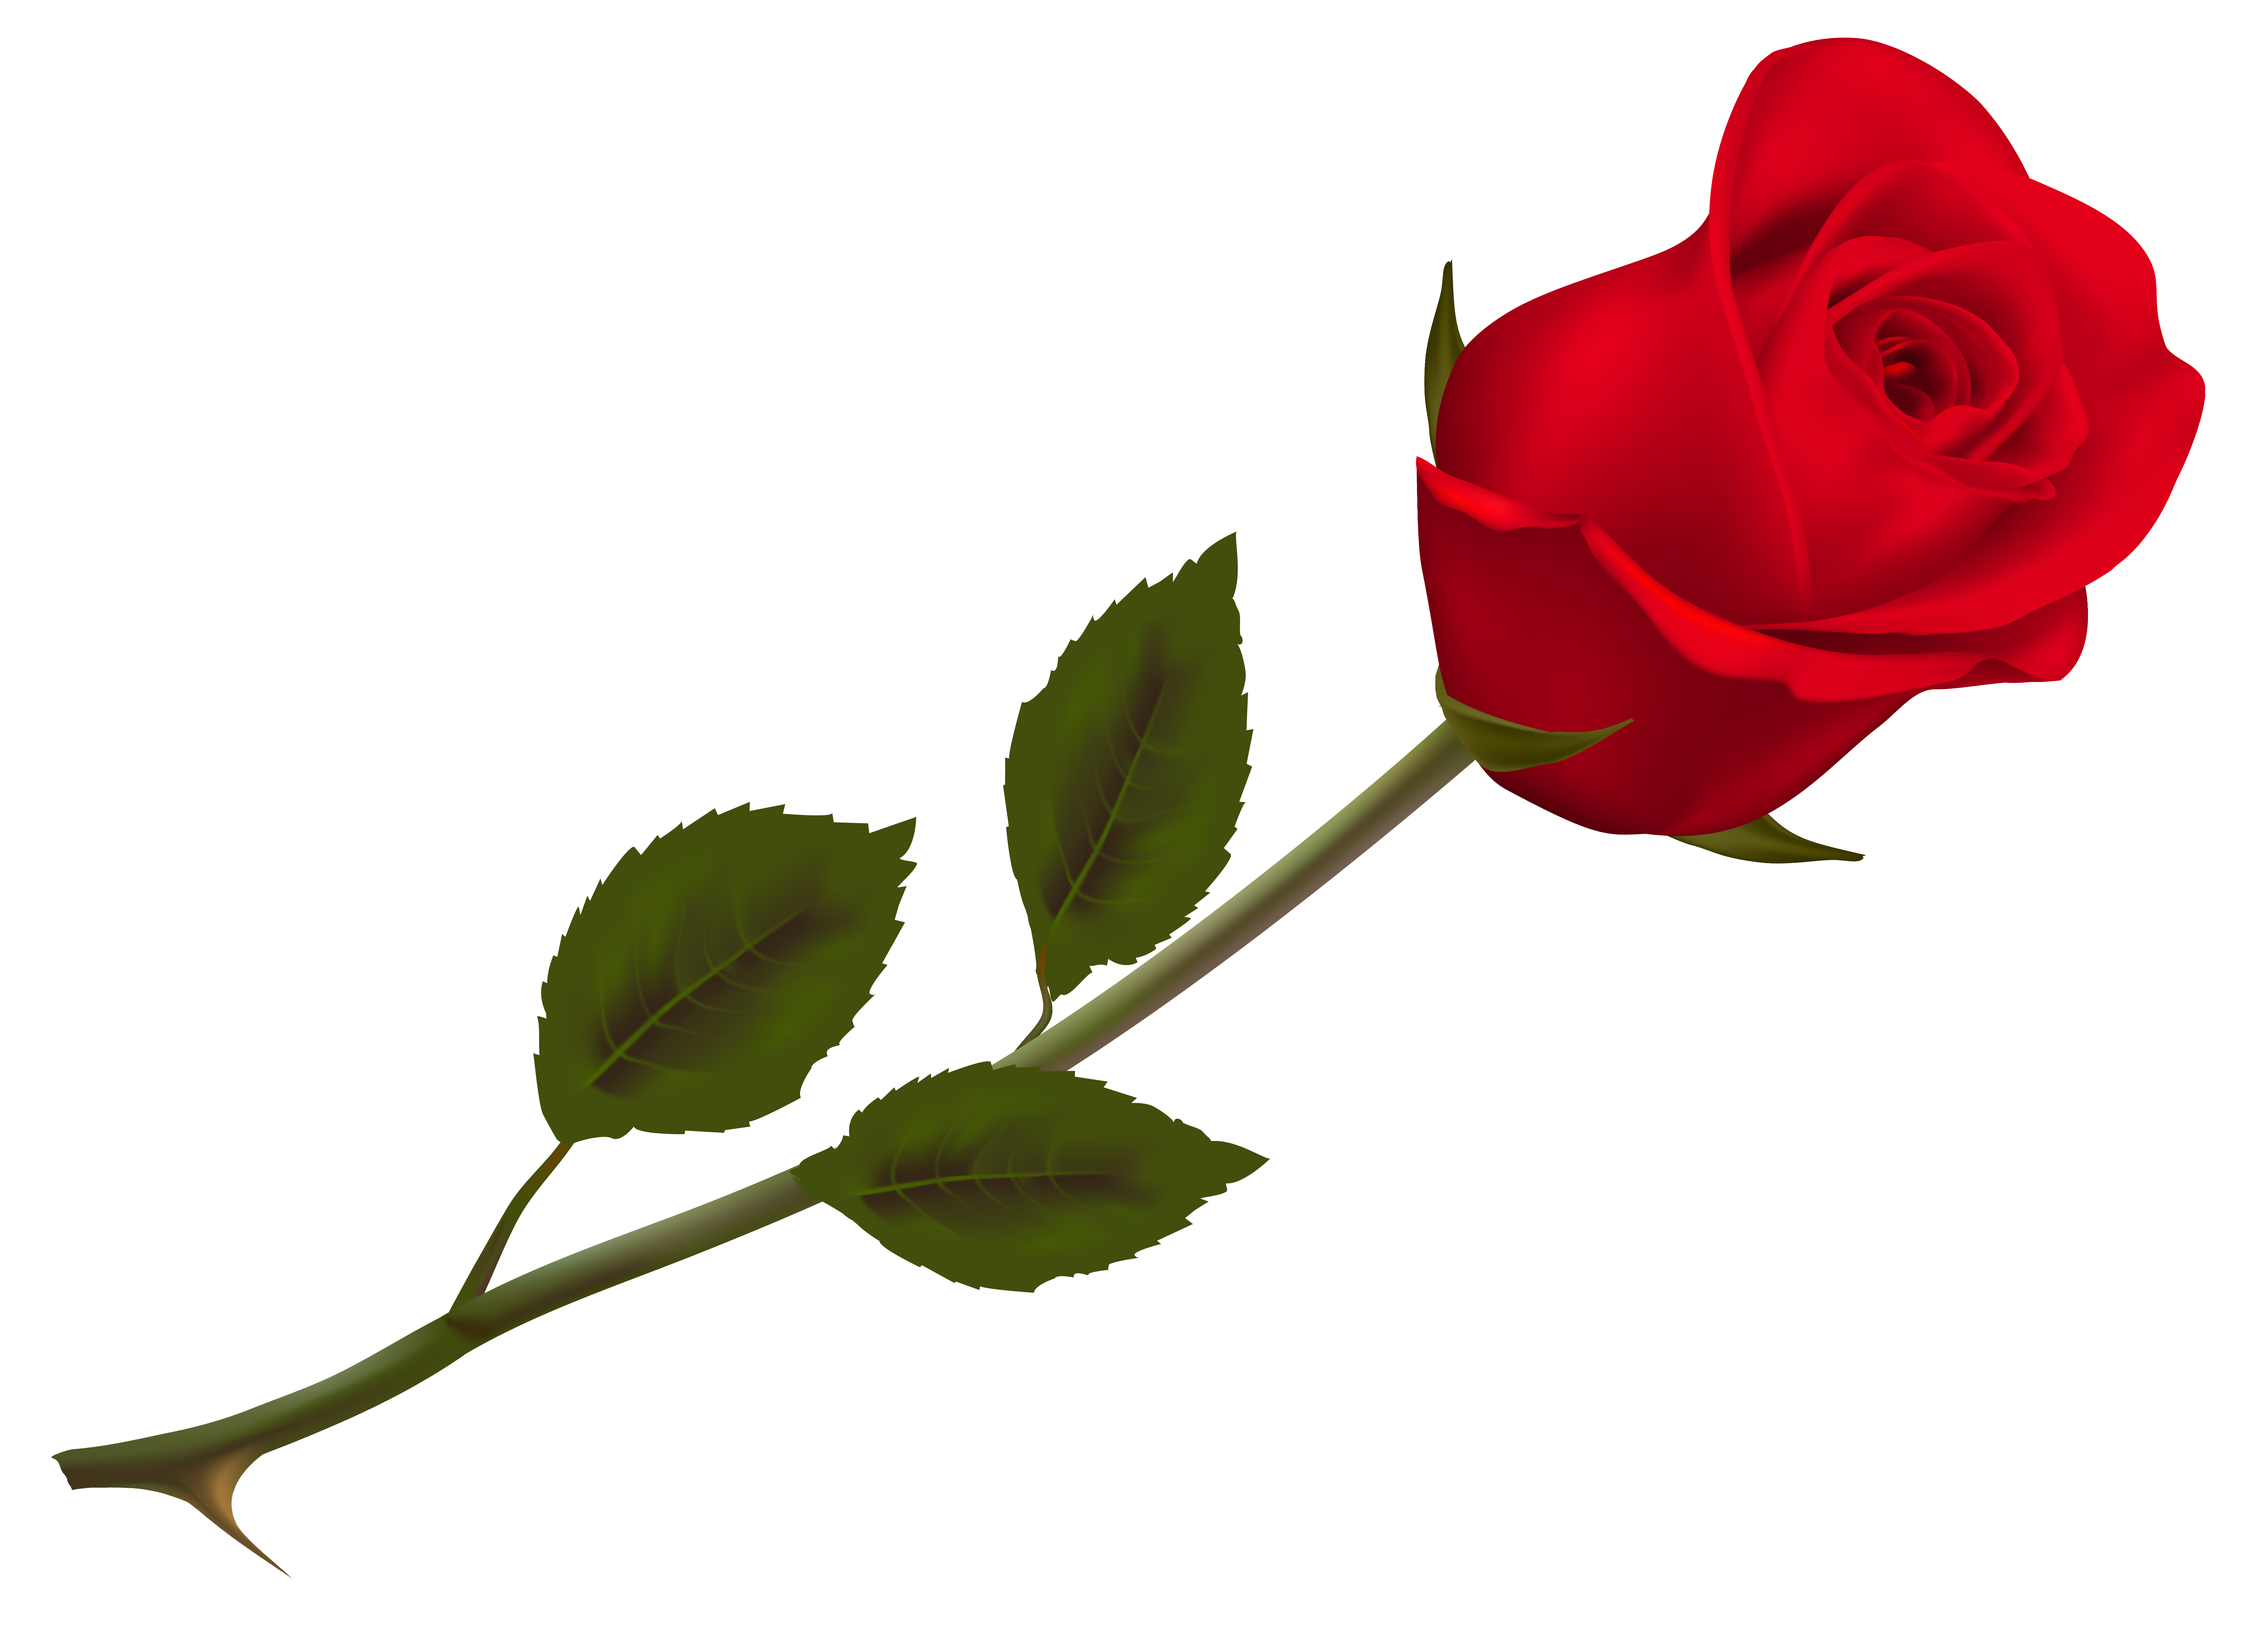 Crown of roses clipart. Transparent beautiful red rose